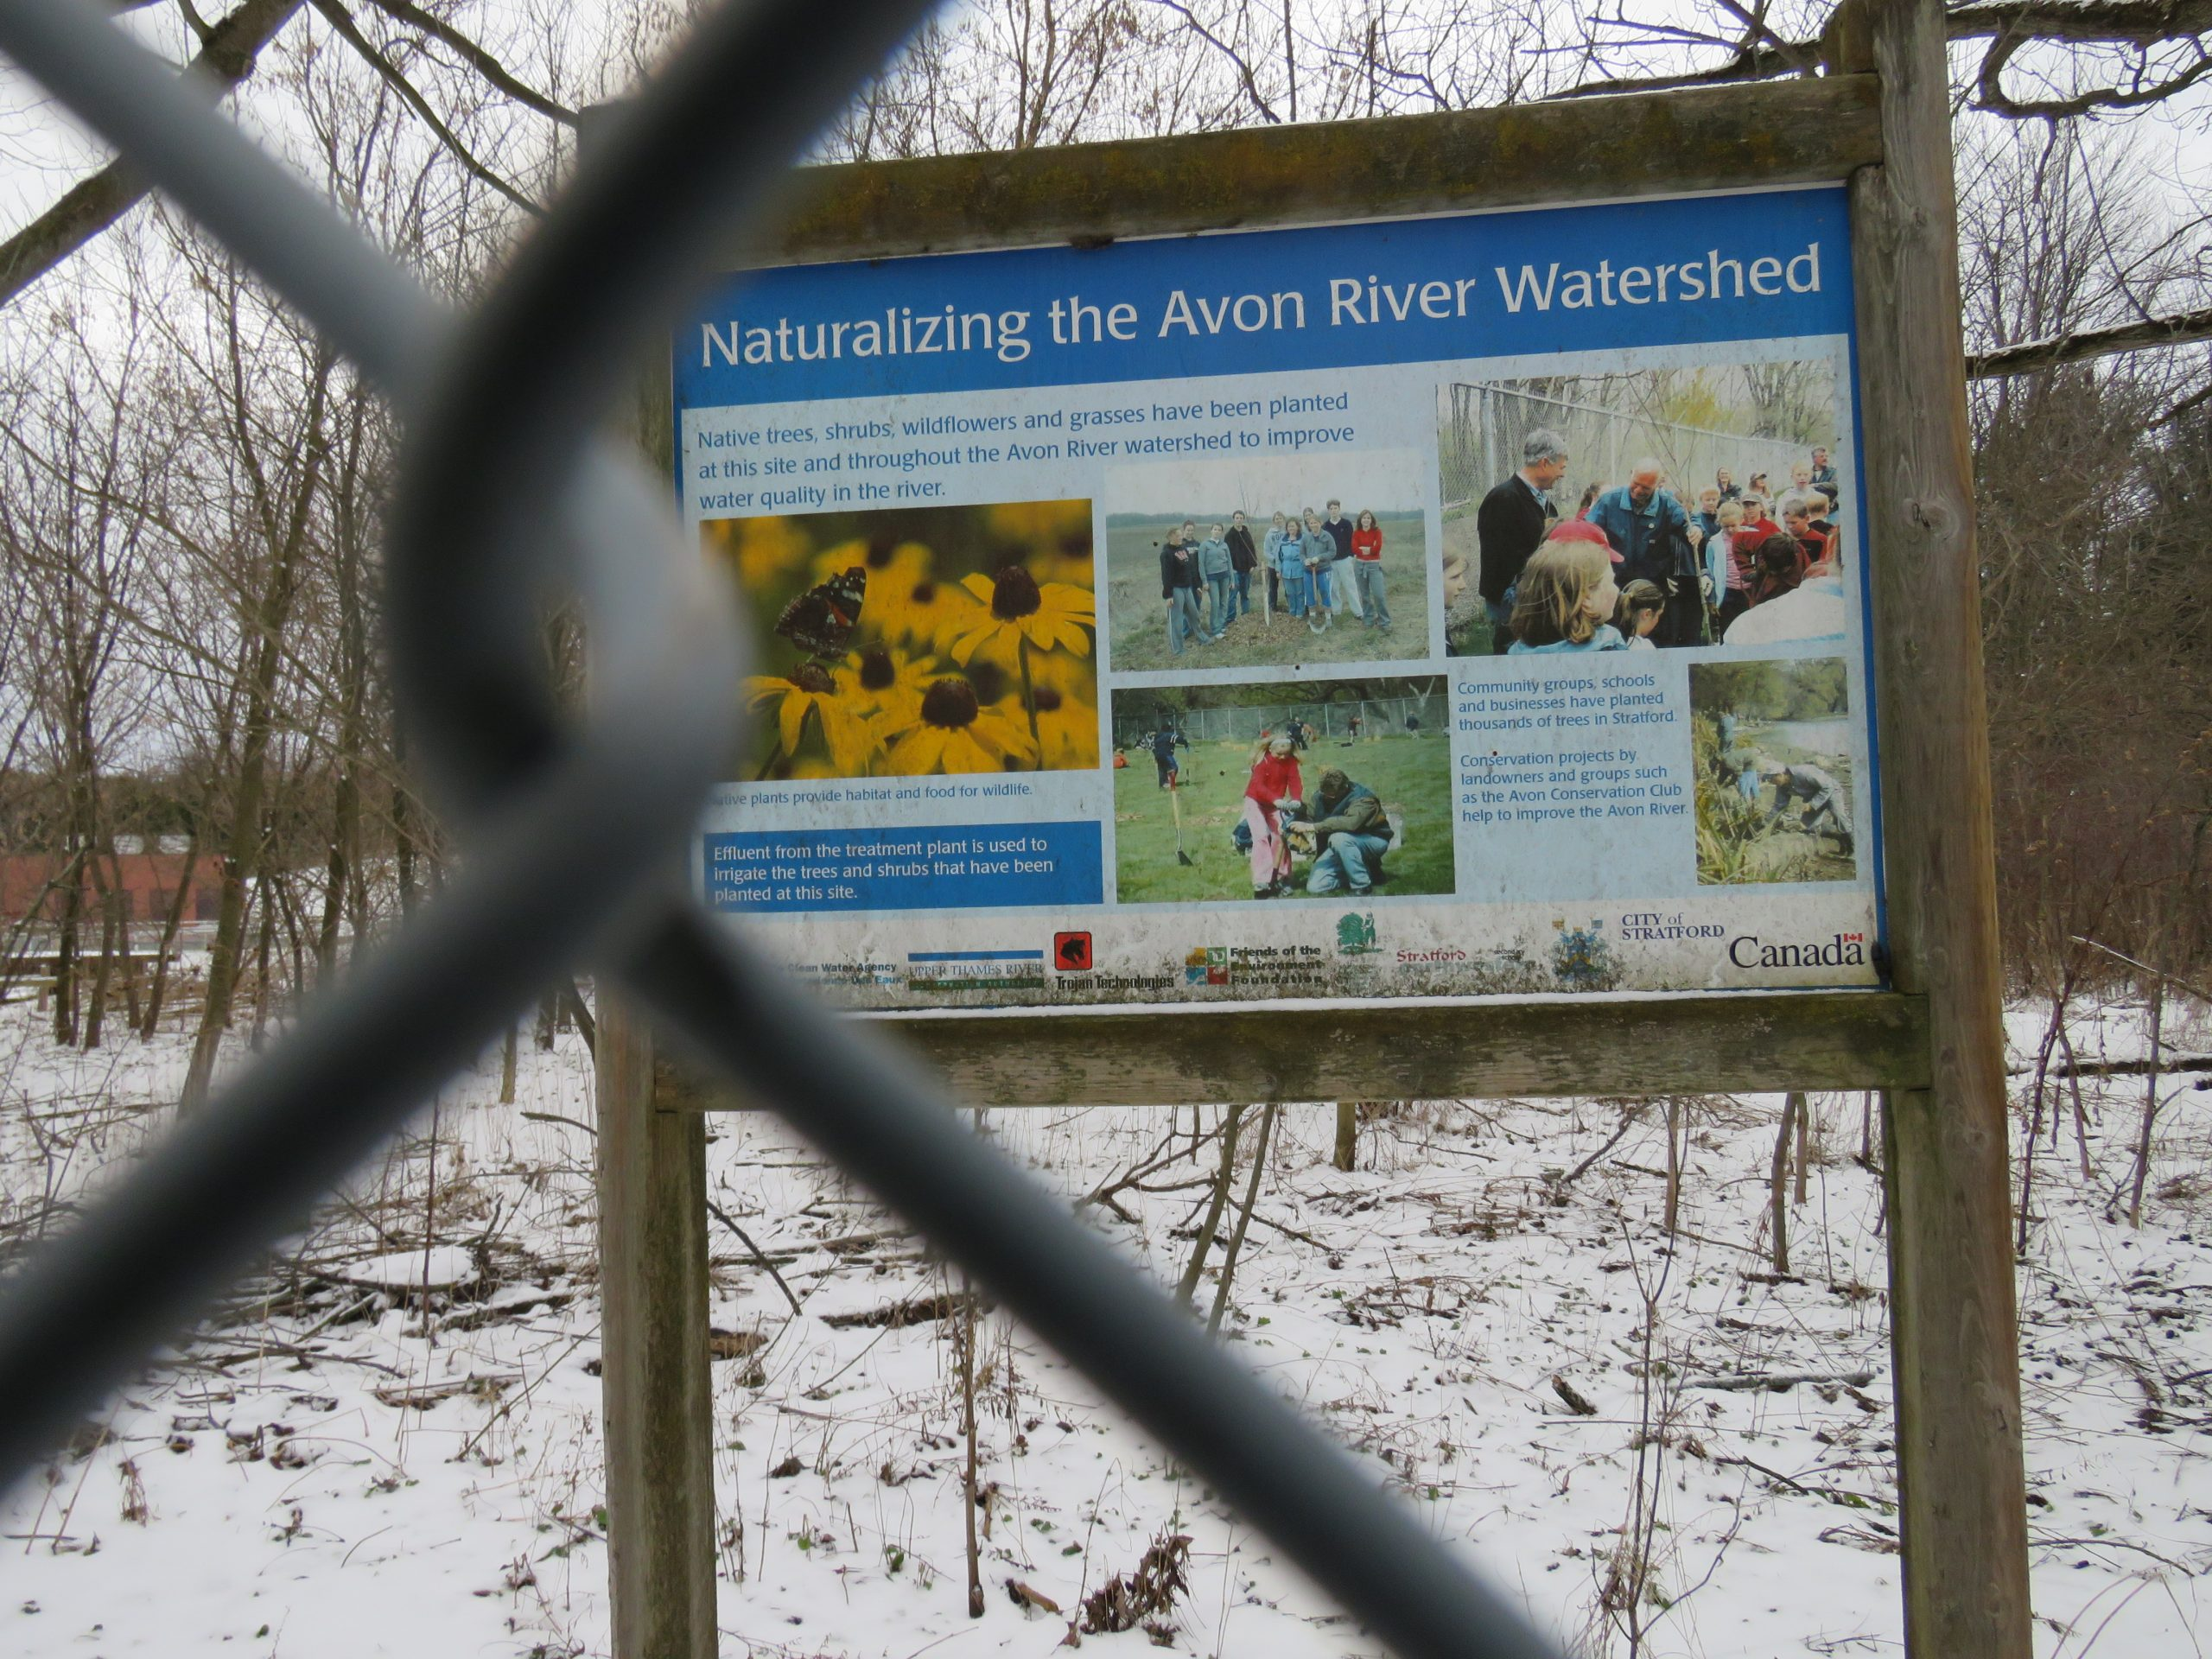 Sign explaining what the history and nature of the area.